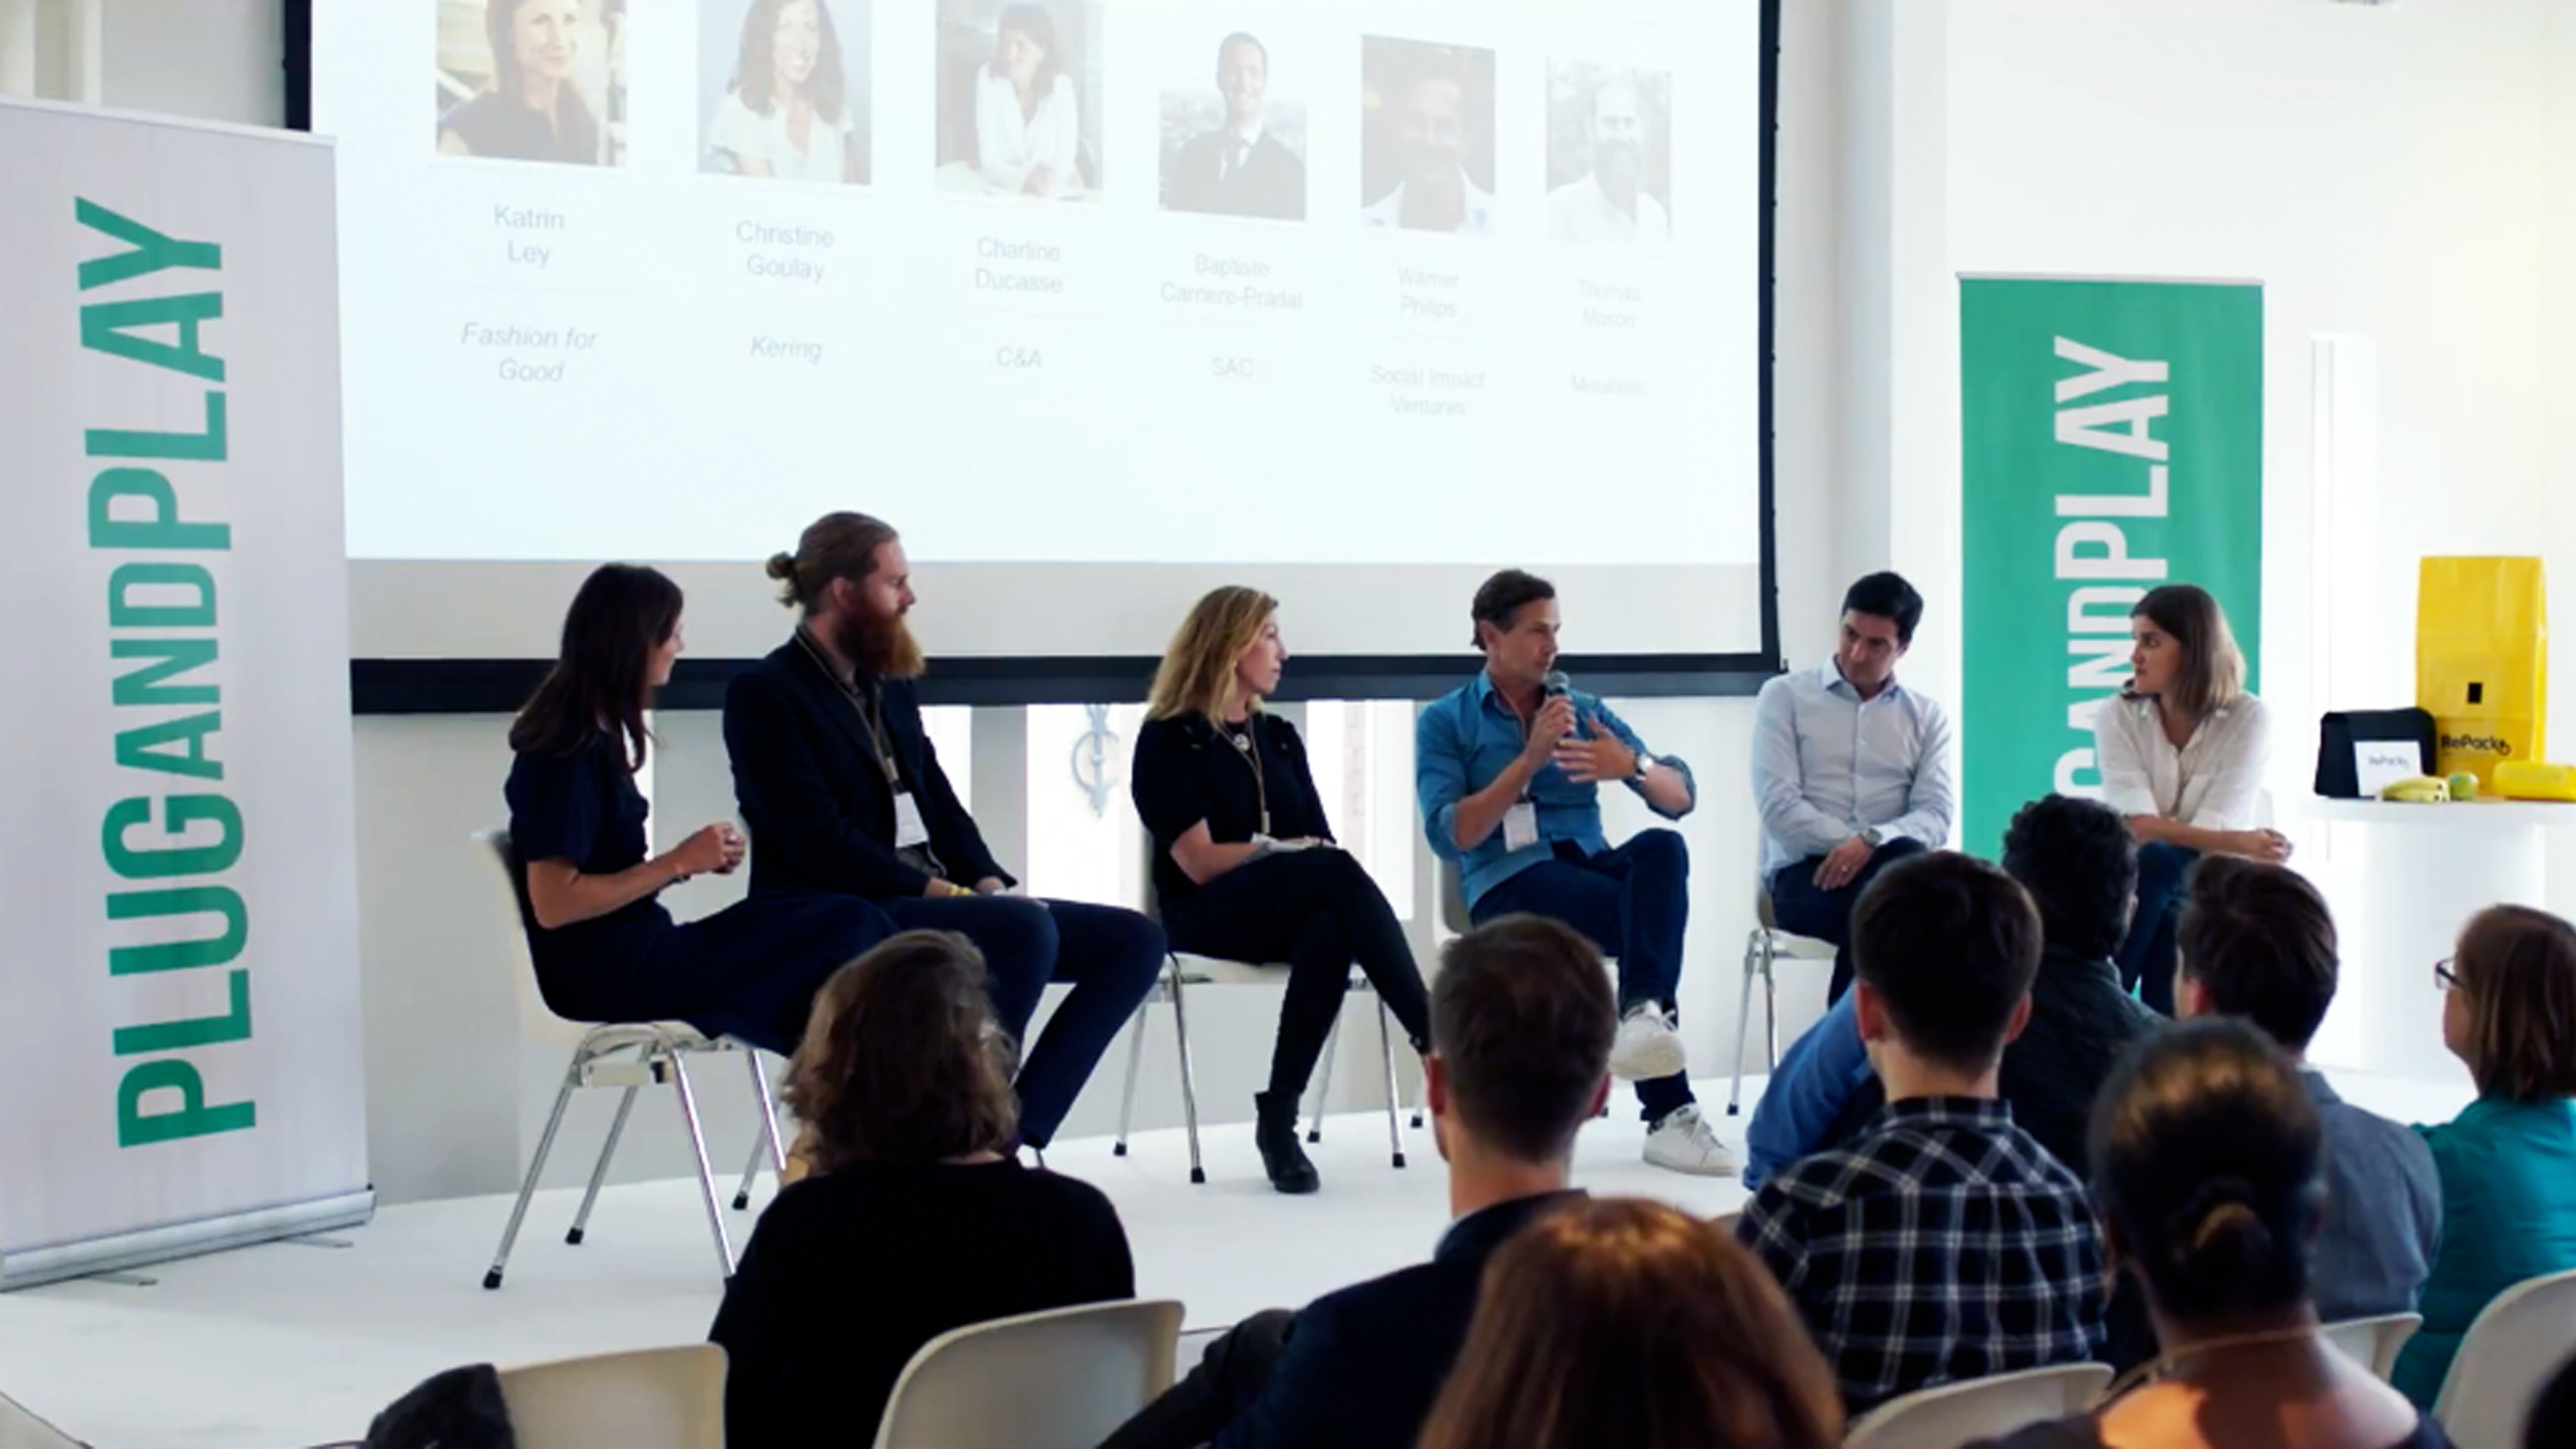 Welcome in the Second Batch of Plug and Play–Fashion for Good Startups